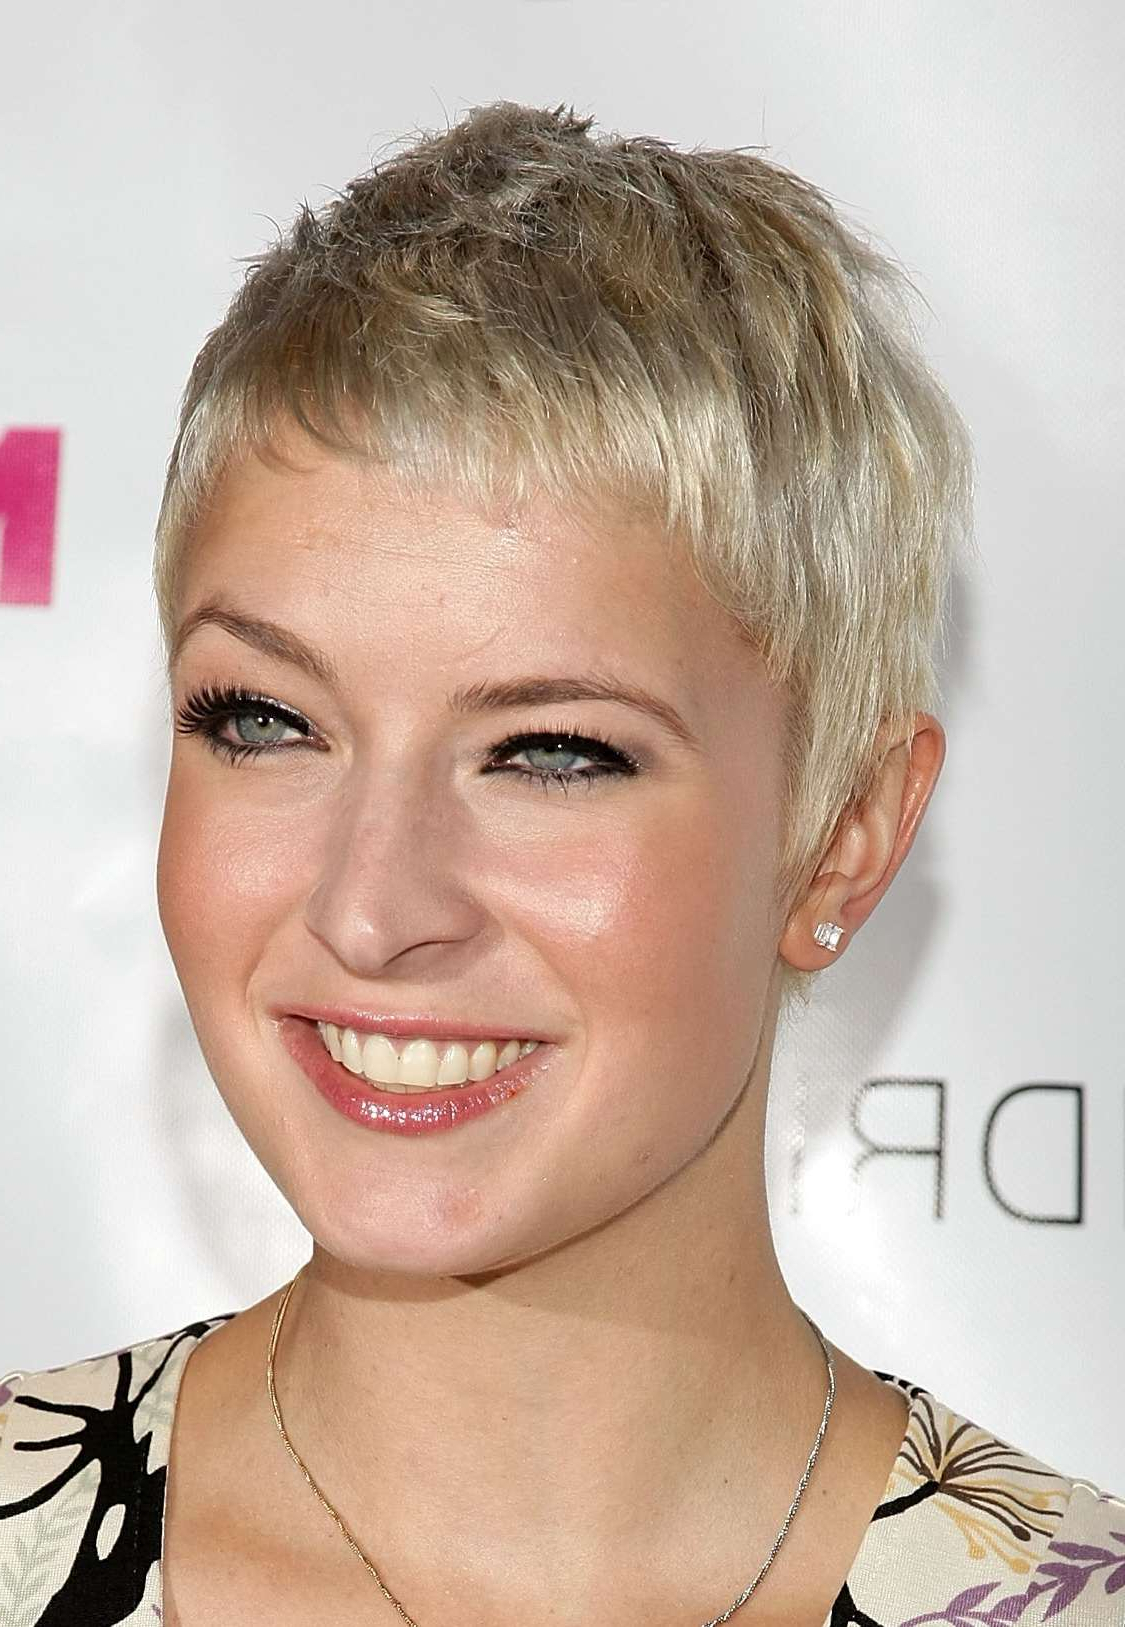 The Best, And Worst, Hairstyles For Square Shaped Faces With Short Hairstyles For Square Faces And Thick Hair (View 7 of 25)